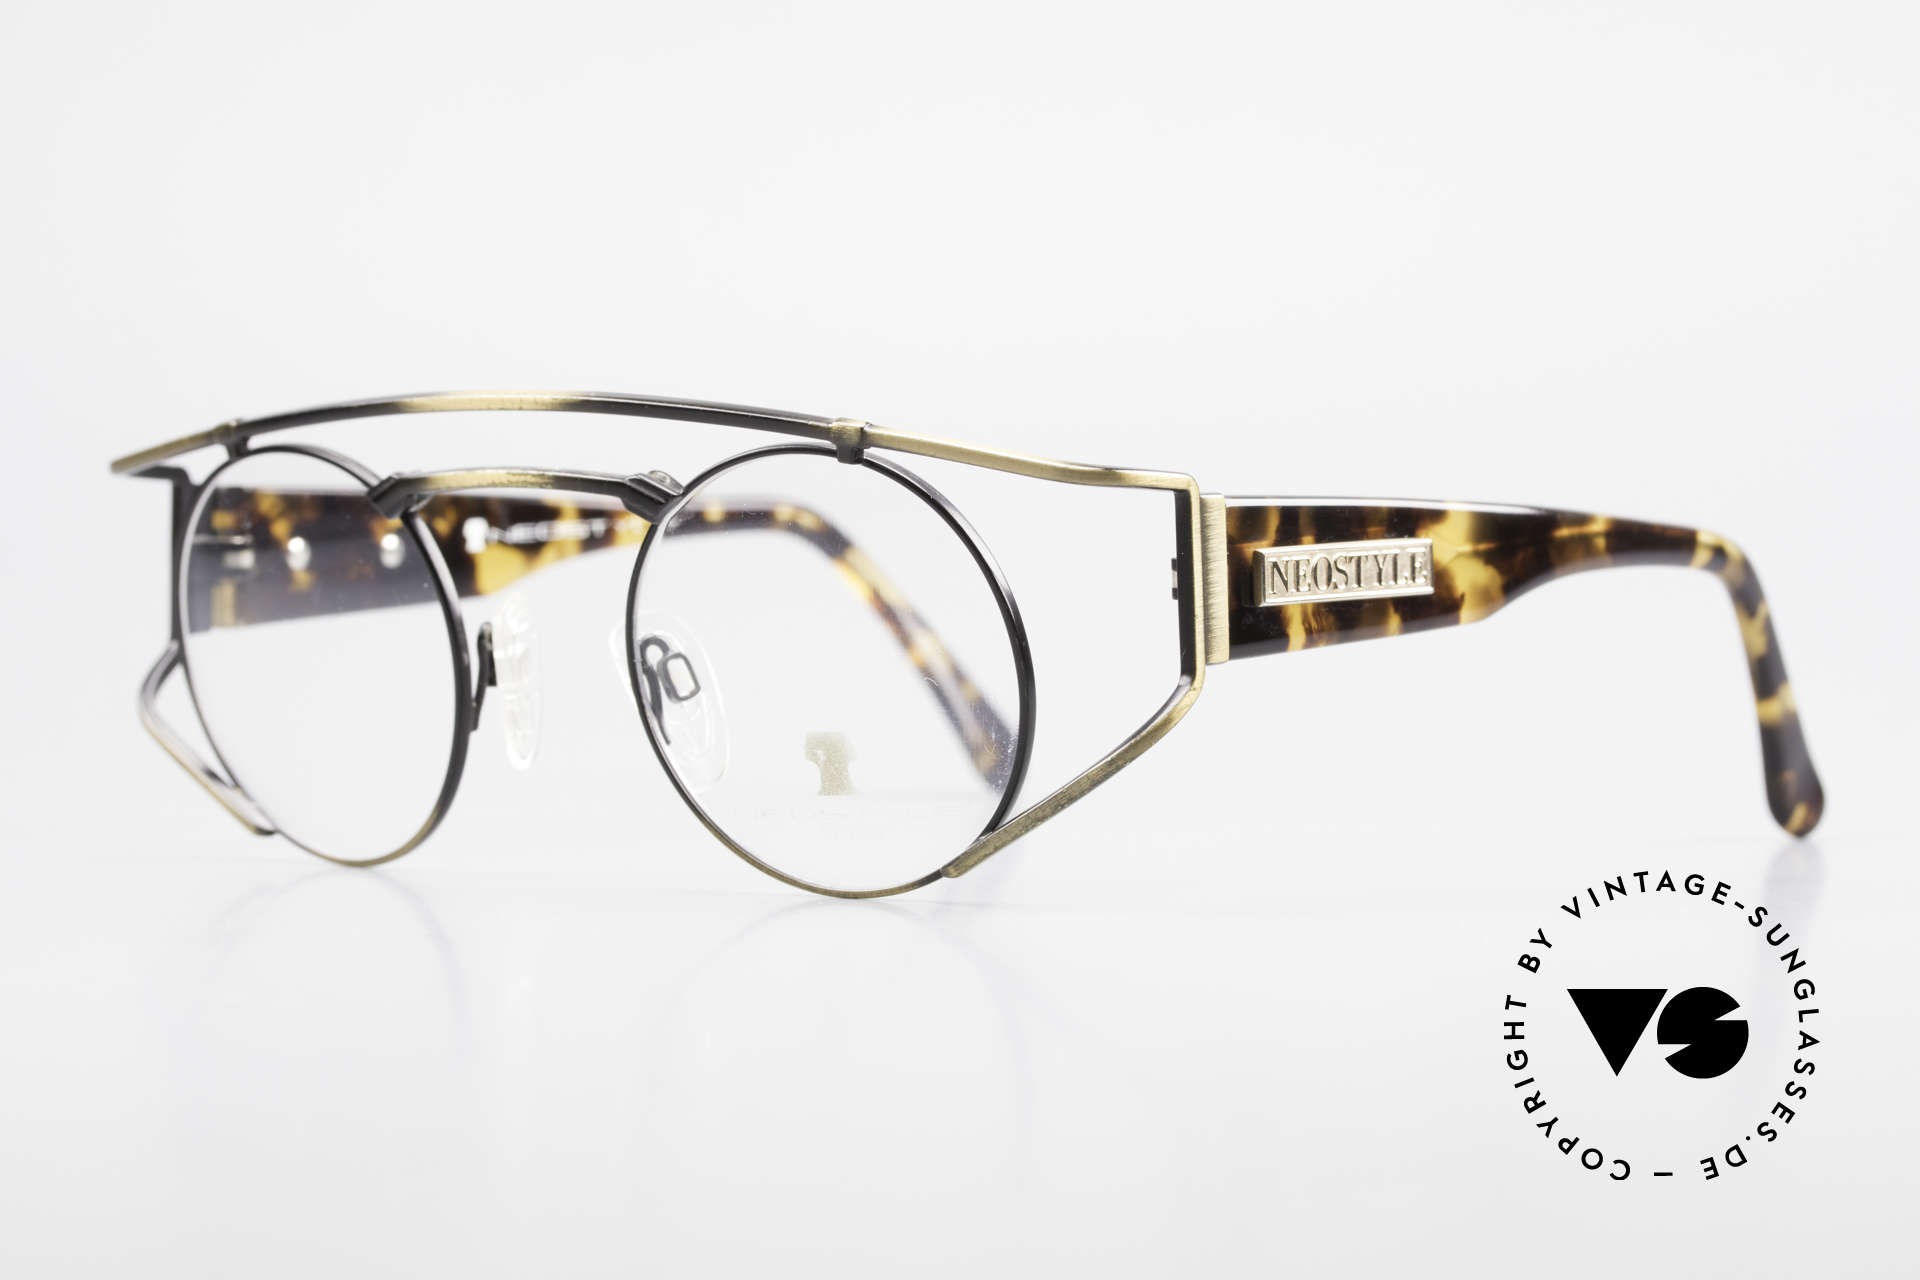 Neostyle Superstar 1 Steampunk Vintage Eyeglasses, yellow-brownish coloring in a kind of camouflage, Made for Men and Women